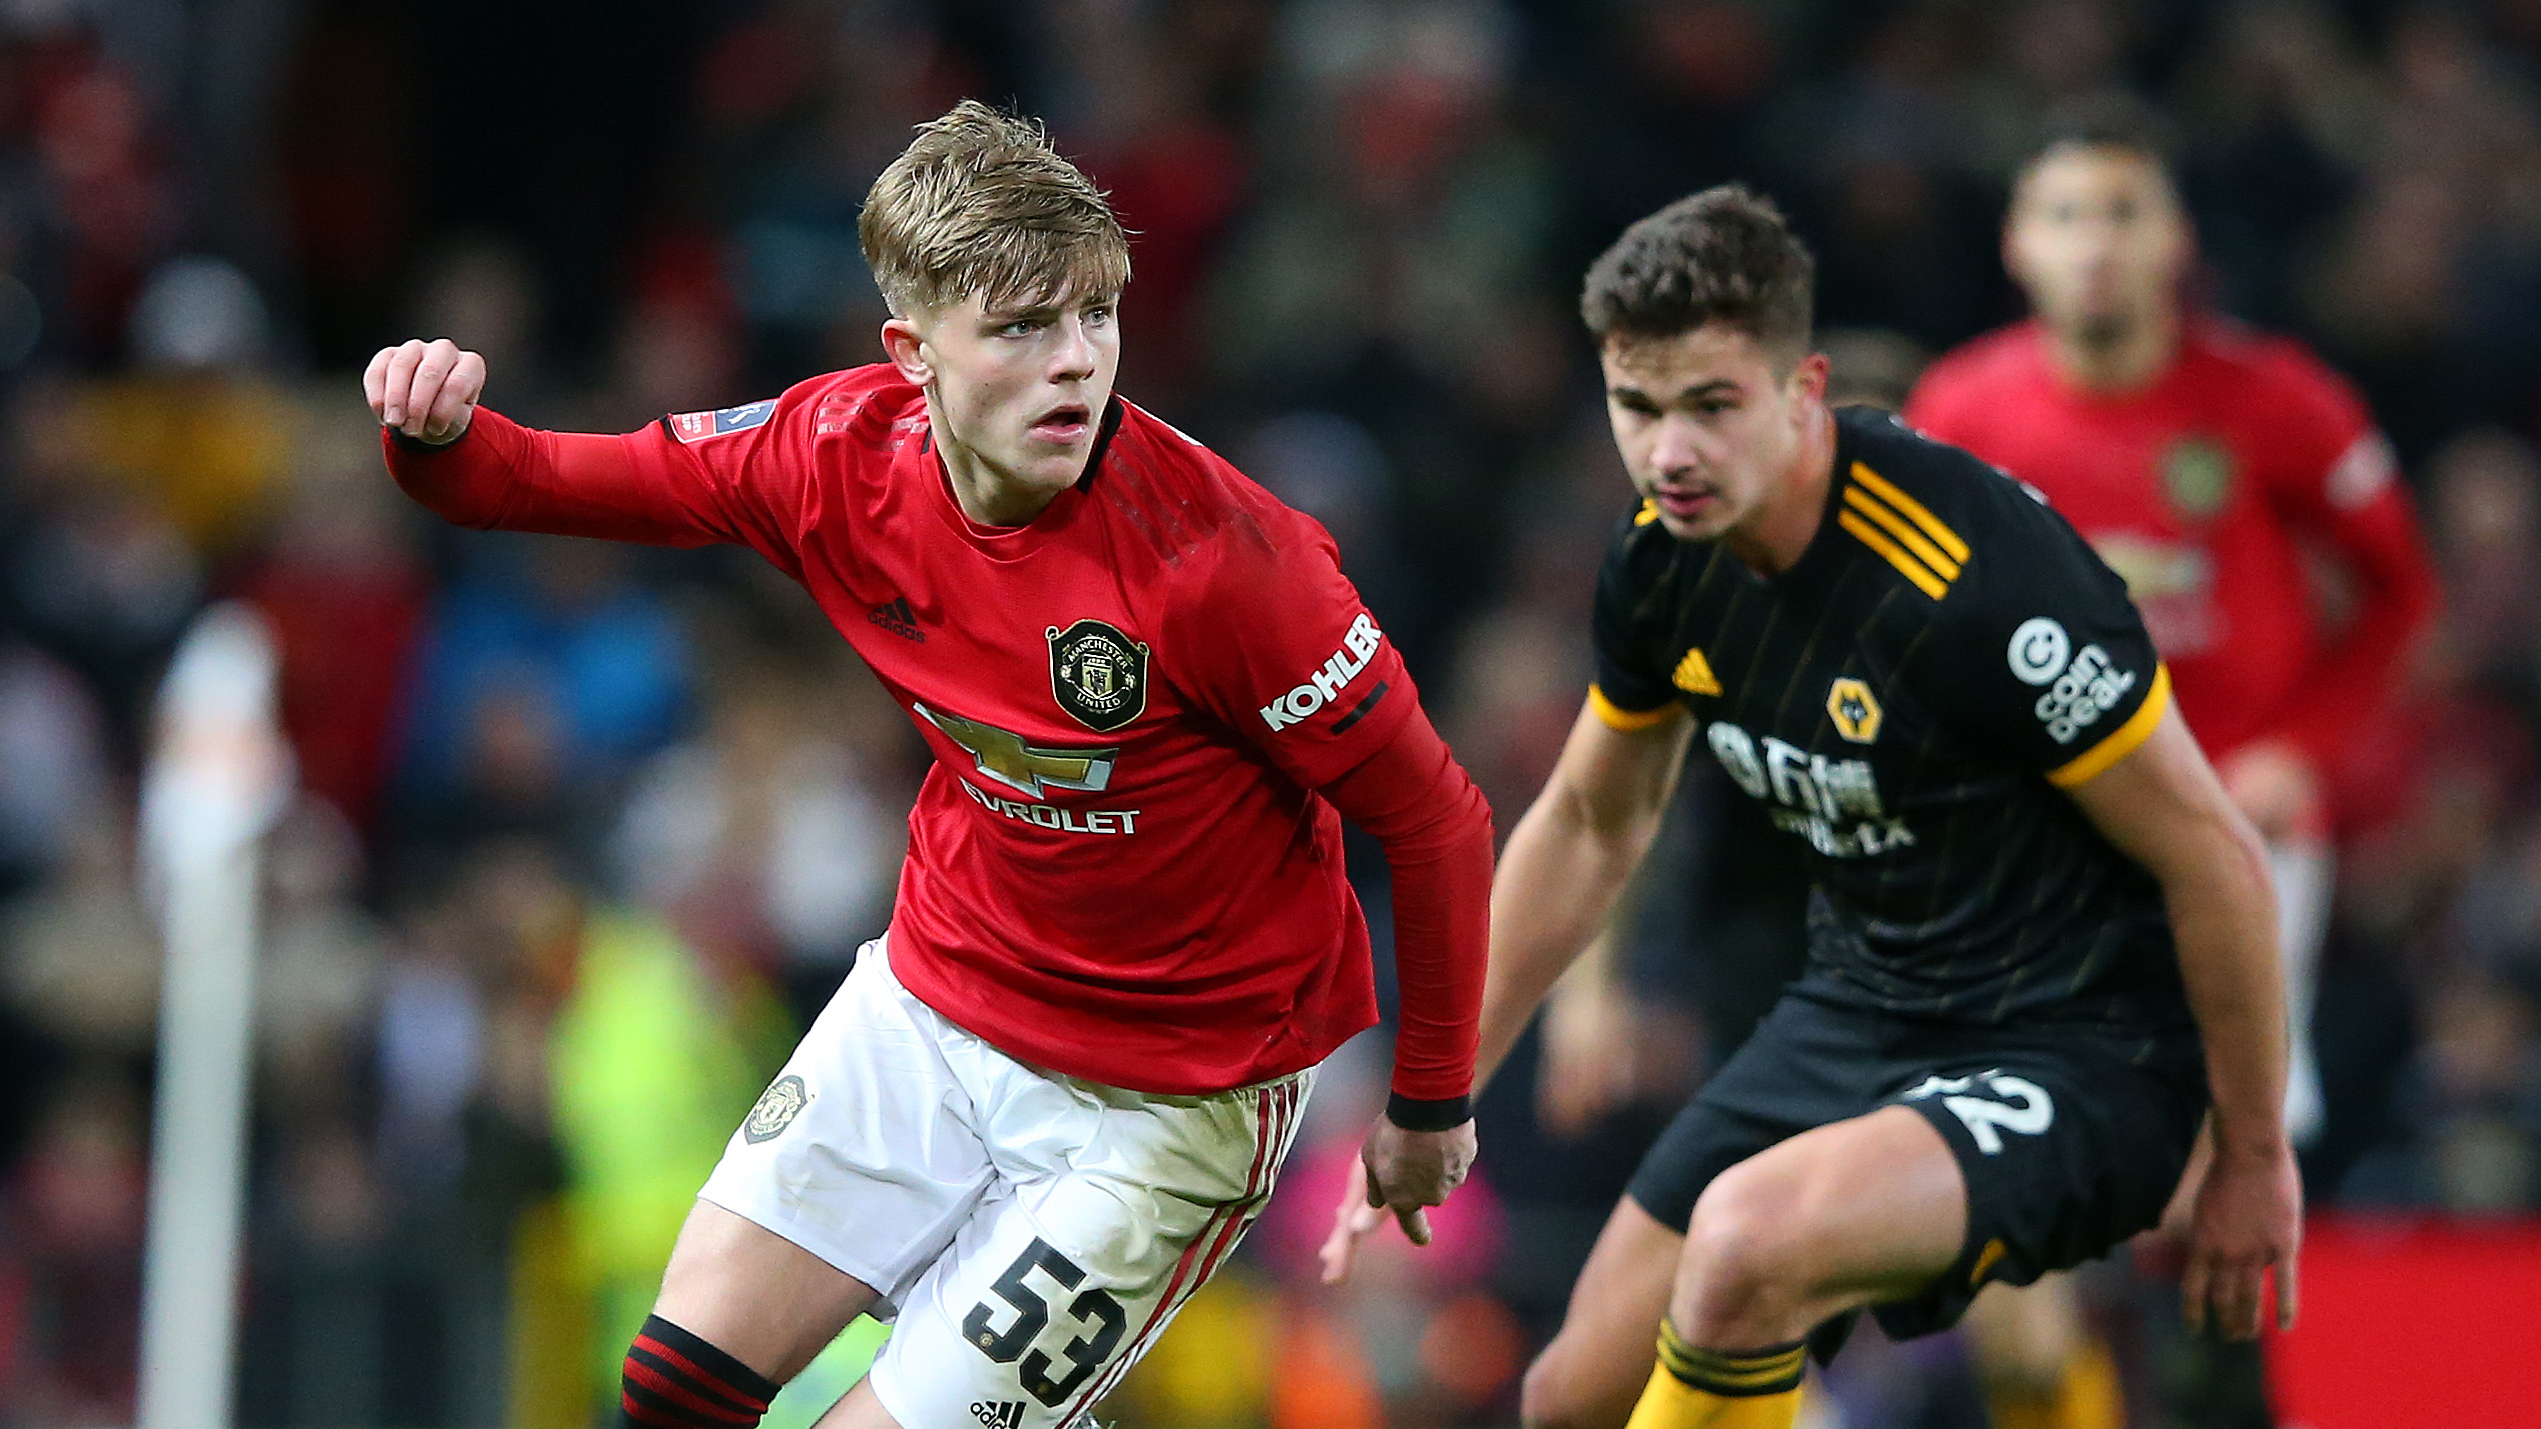 Williams Has Come From Nowhere At Man Utd Teenage Full Back Topping Greenwood Says Brown Goal Com